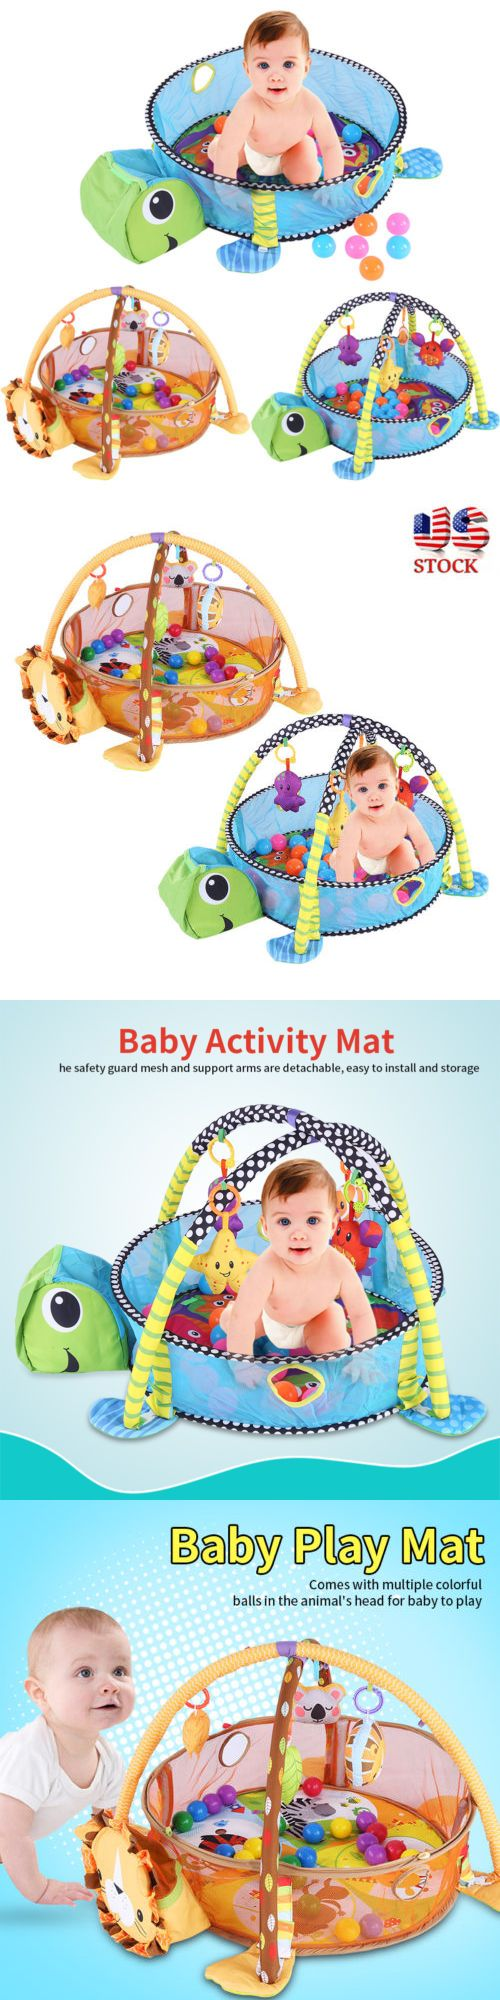 Baby Gyms and Play Mats 19069: Infant Toddler Baby Play Mat Activity Gym Playmat Floor Adorable Lion Turtle Toy -> BUY IT NOW ONLY: $34.4 on eBay!